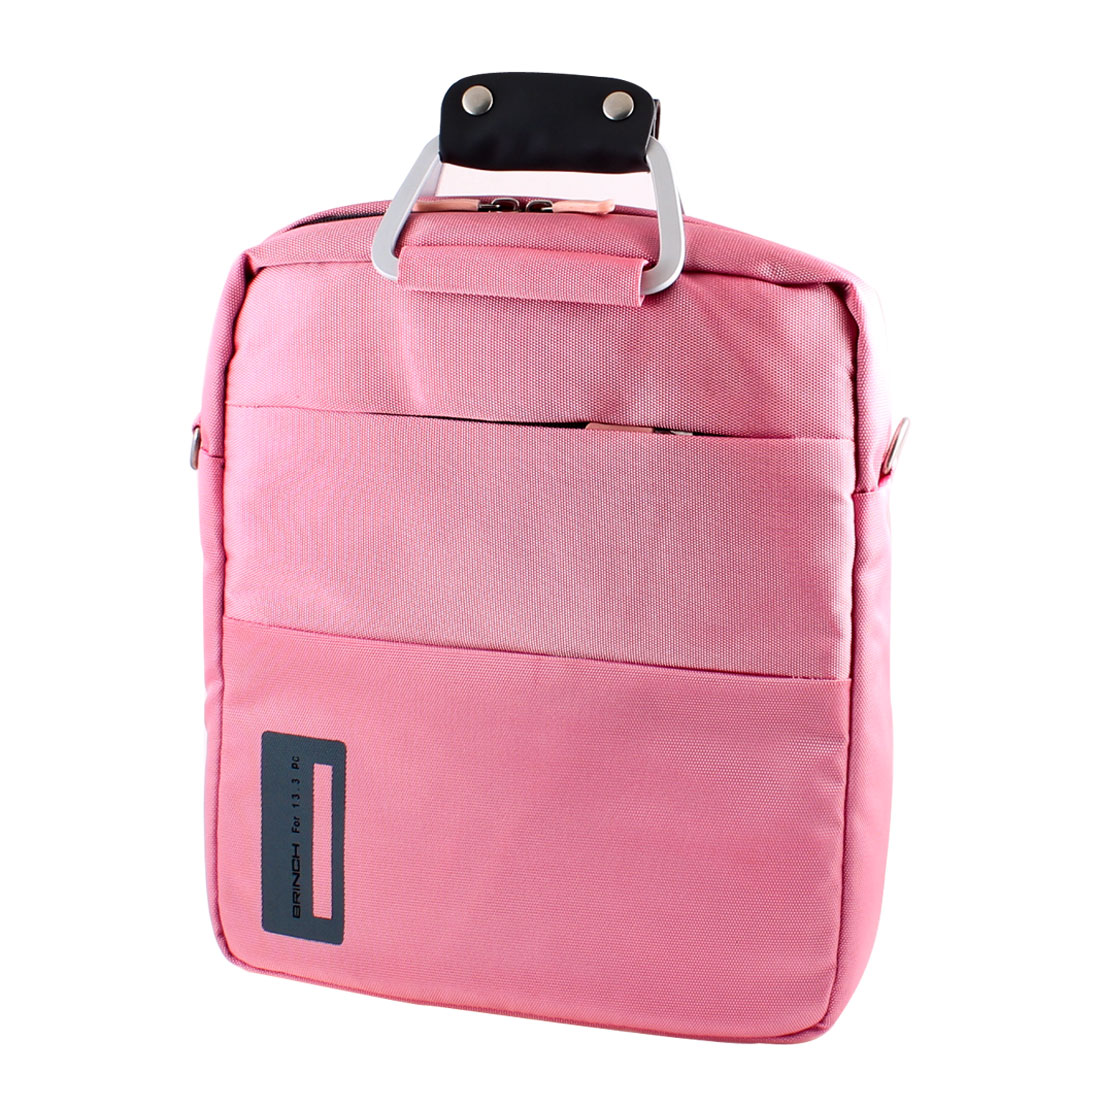 "13"" 13.3"" Laptop Notebook Carry Bag Case Pouch w Shoulder Strap Pink"